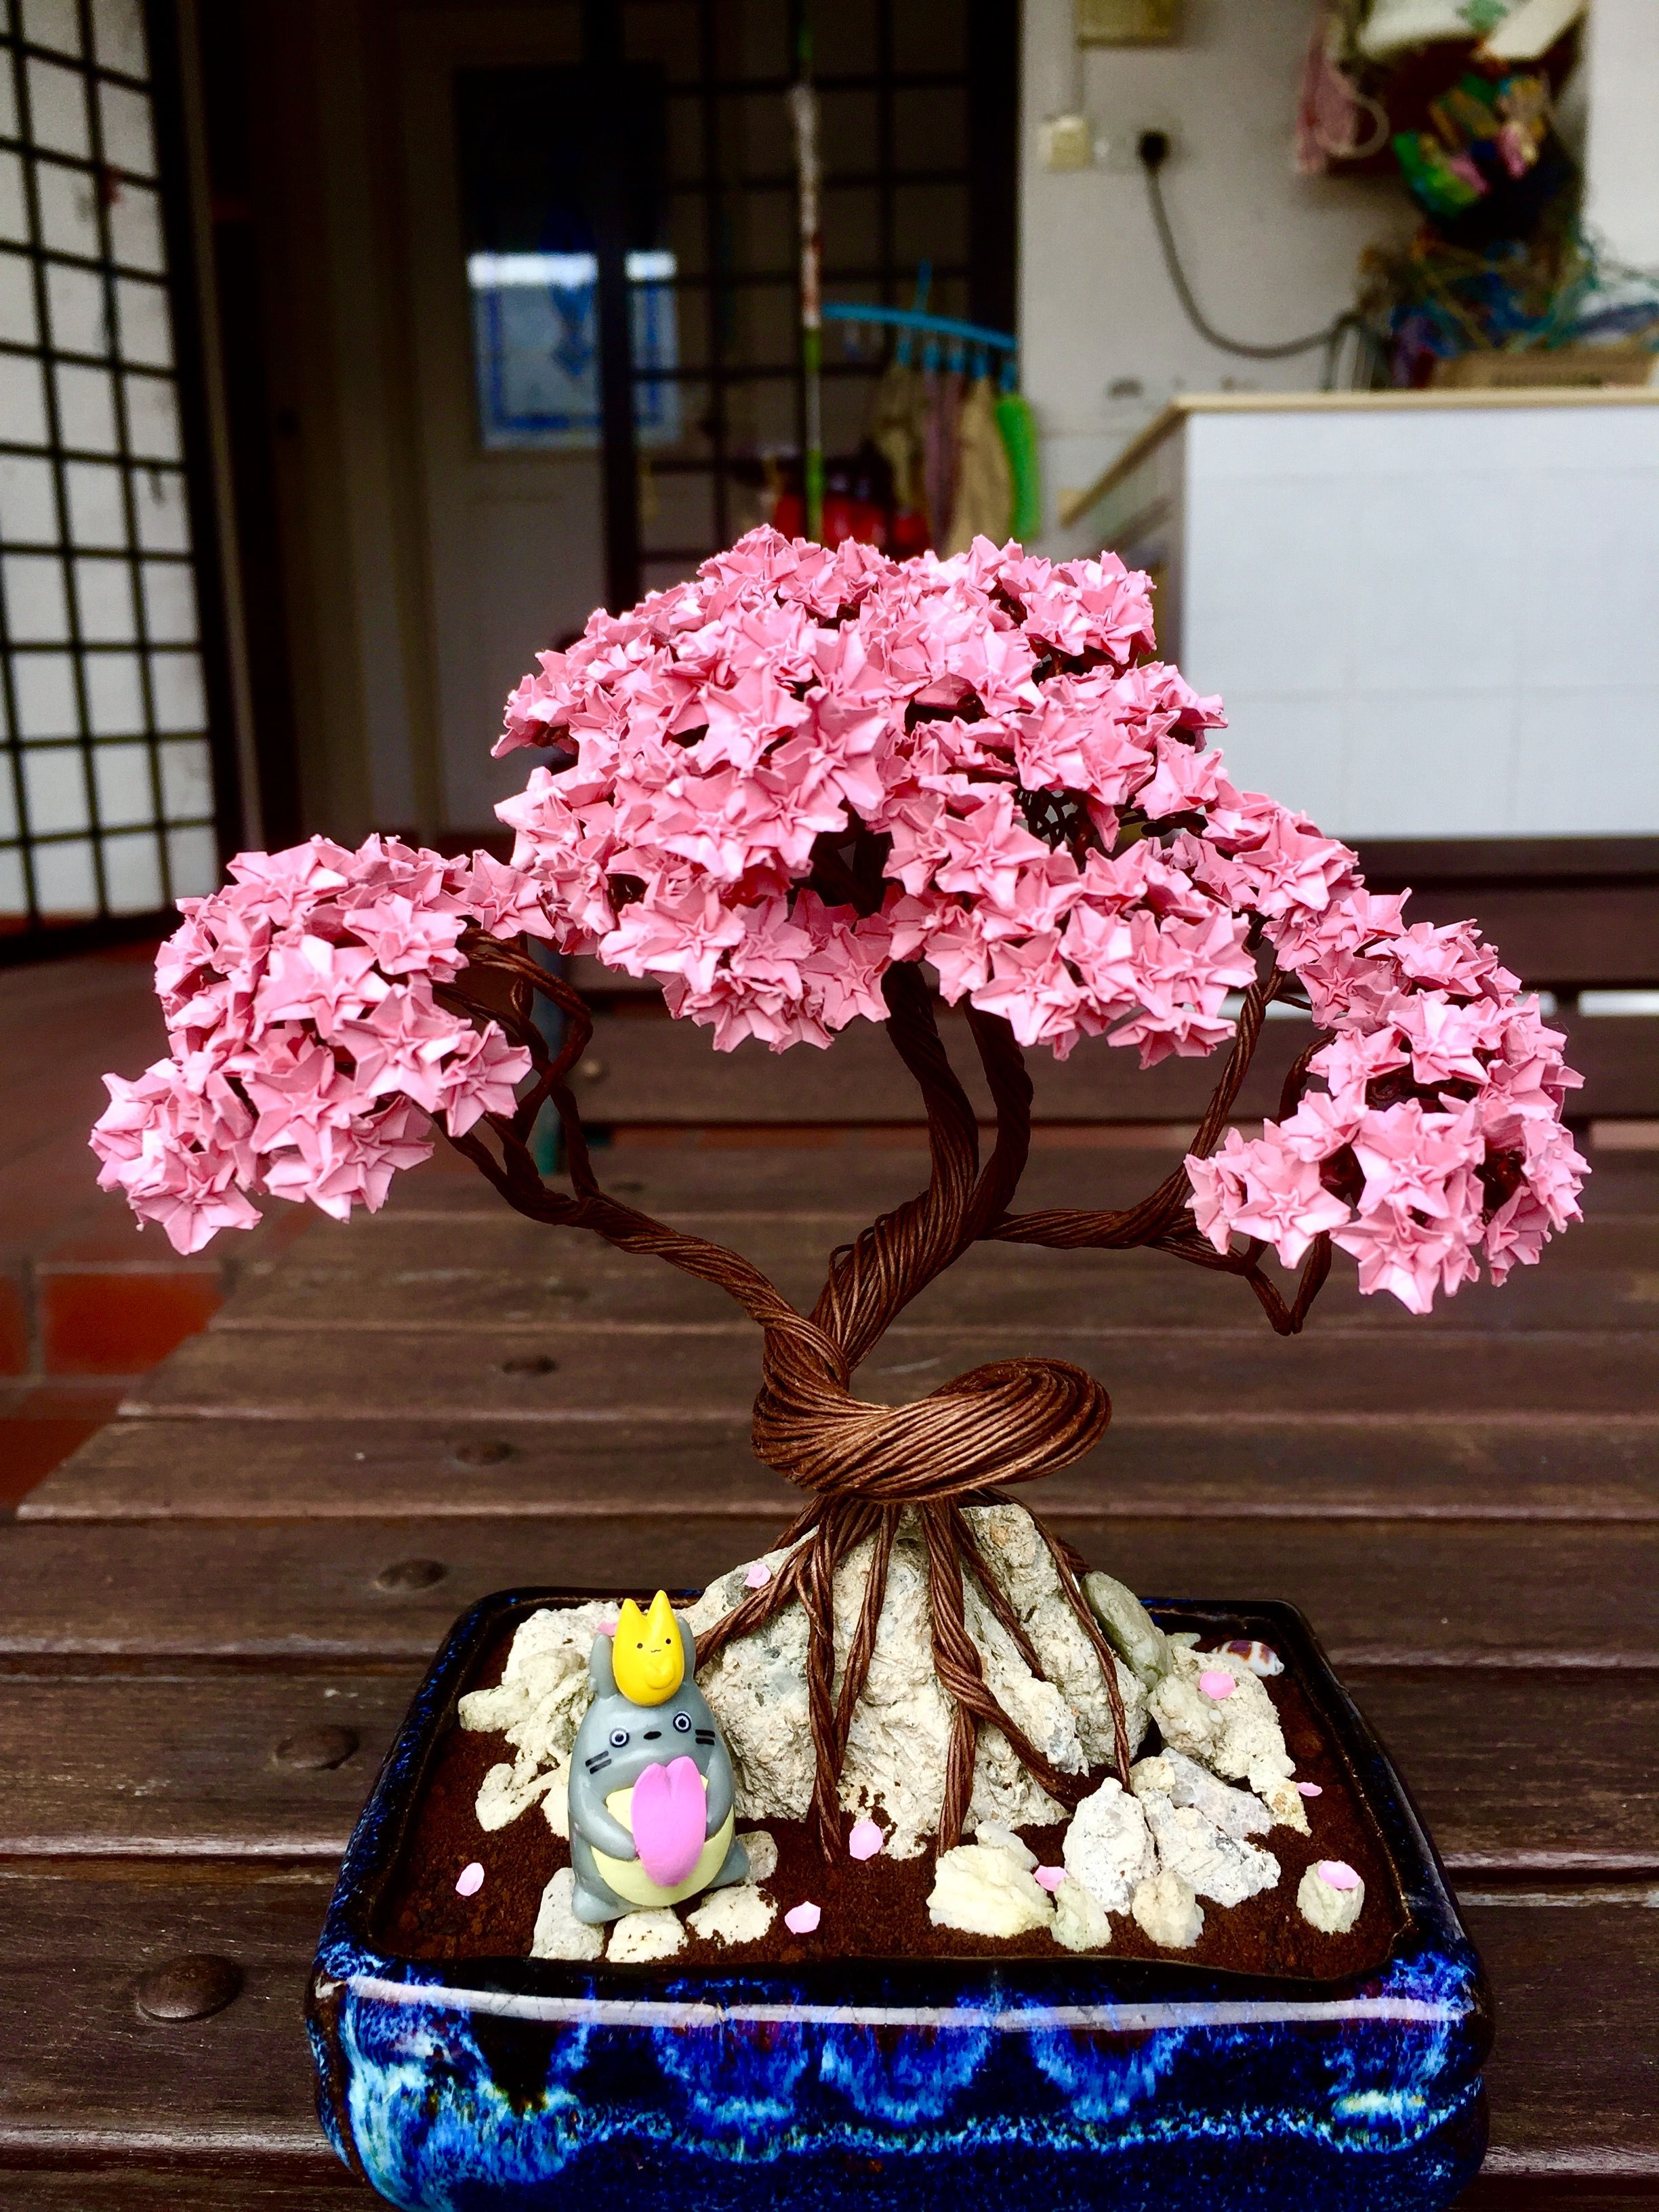 294 Origami Sakura Flowers With A Wired Bonsai Tree Bonsai Tree Origami Flowers Sakura Flower